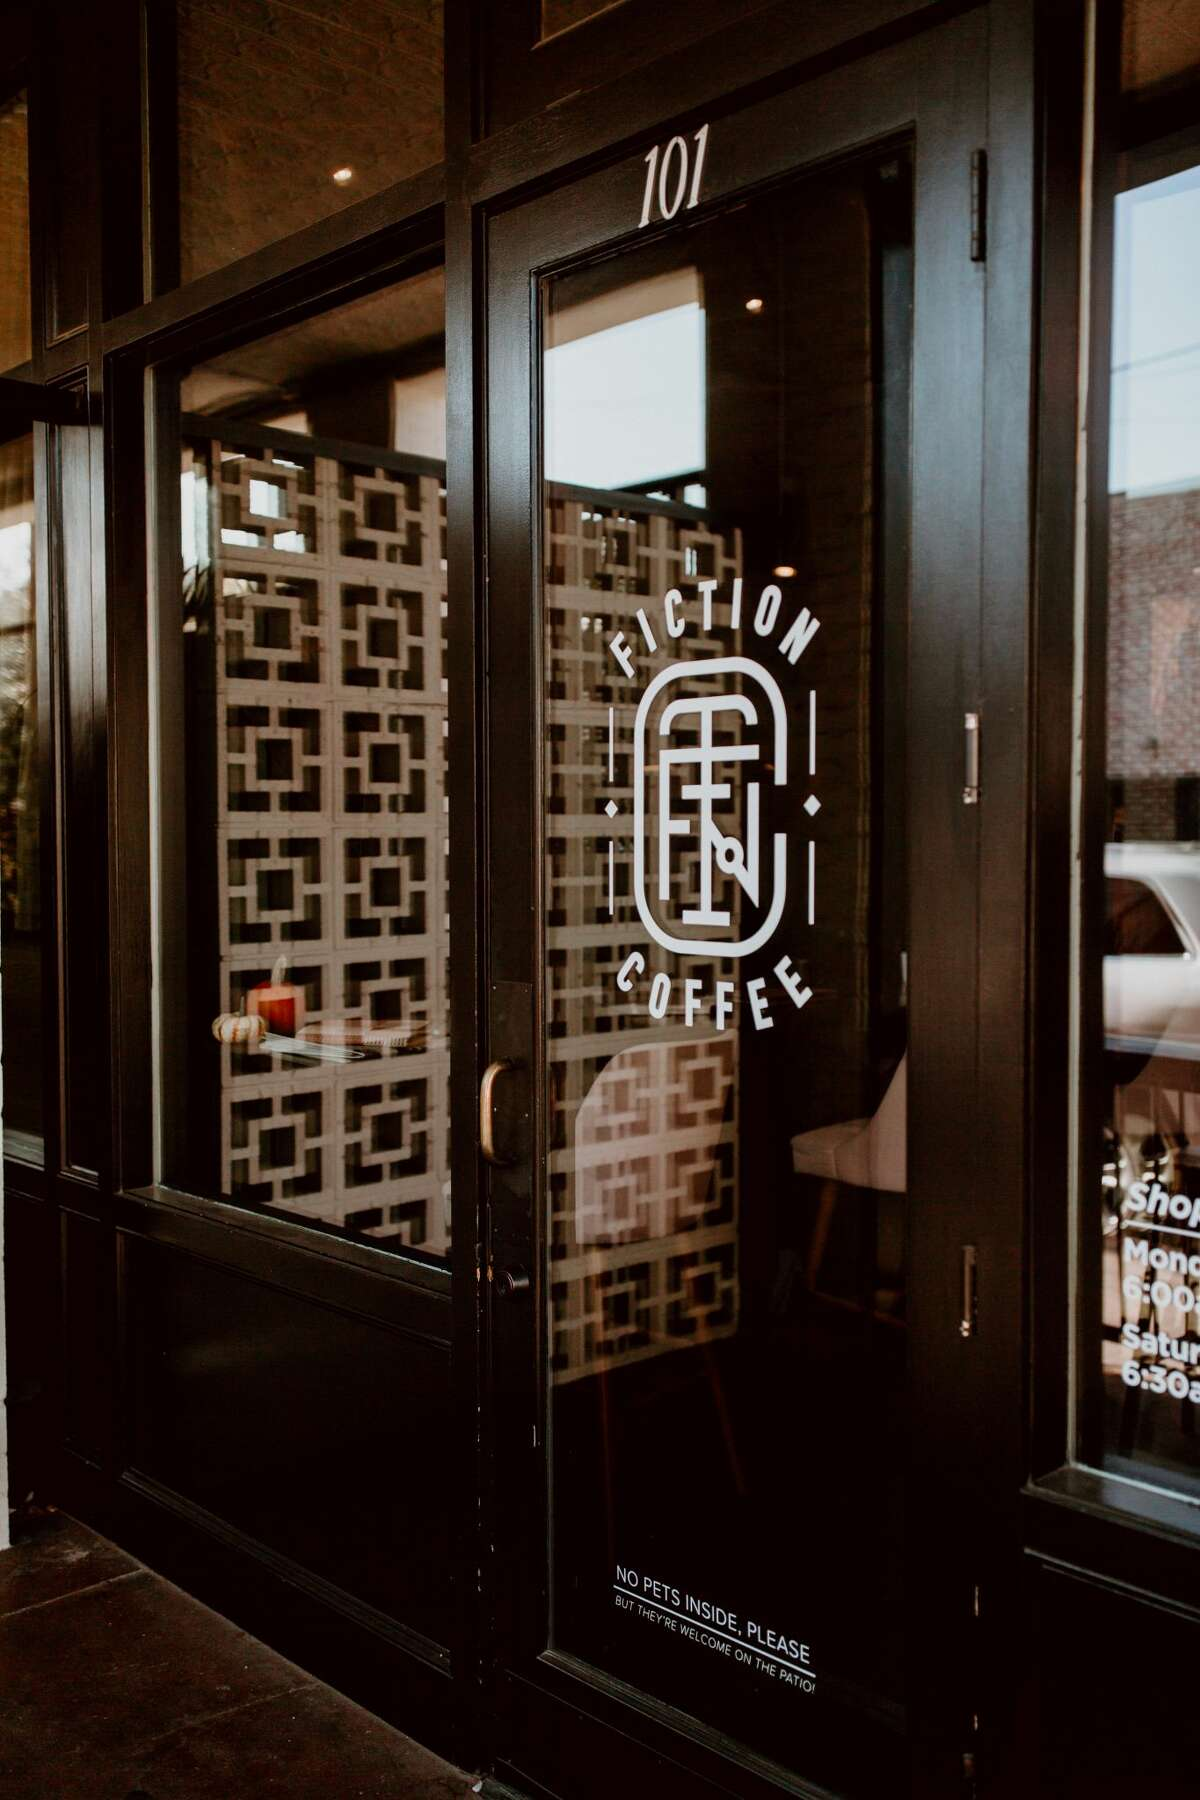 Fiction Coffee will open at 1400 Post Oak Blvd. as a craft coffee amenity for tenants of the Four Oaks Place office campus.